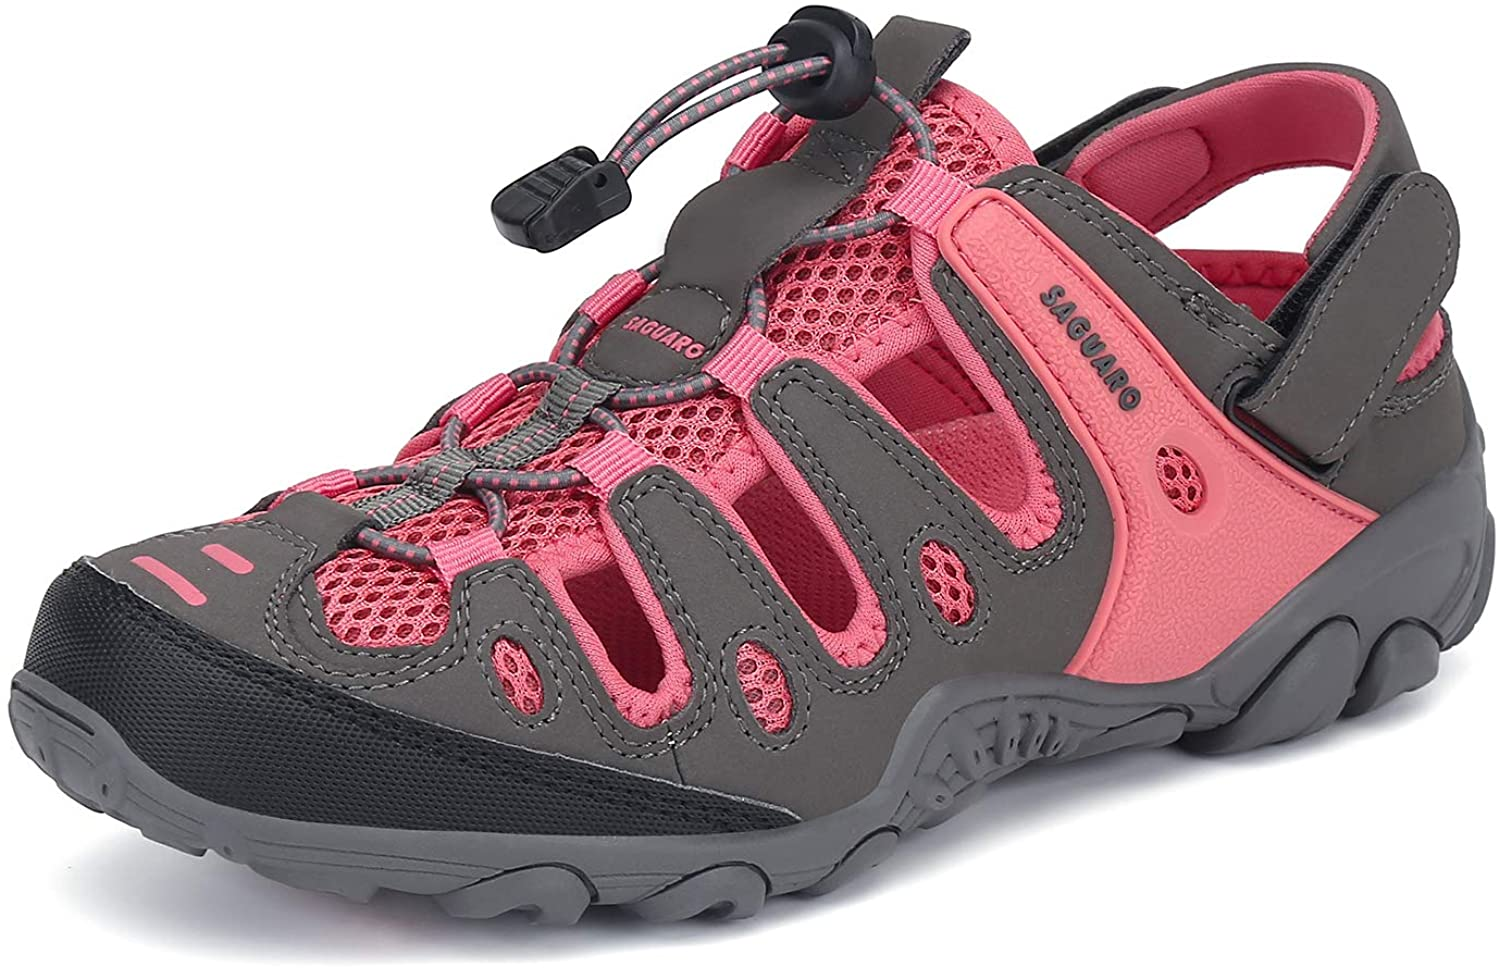 Mens Womens Outdoor Athletic Hiking Sandals Breathable Wading Stream Beach Walking Water Shoes Pink